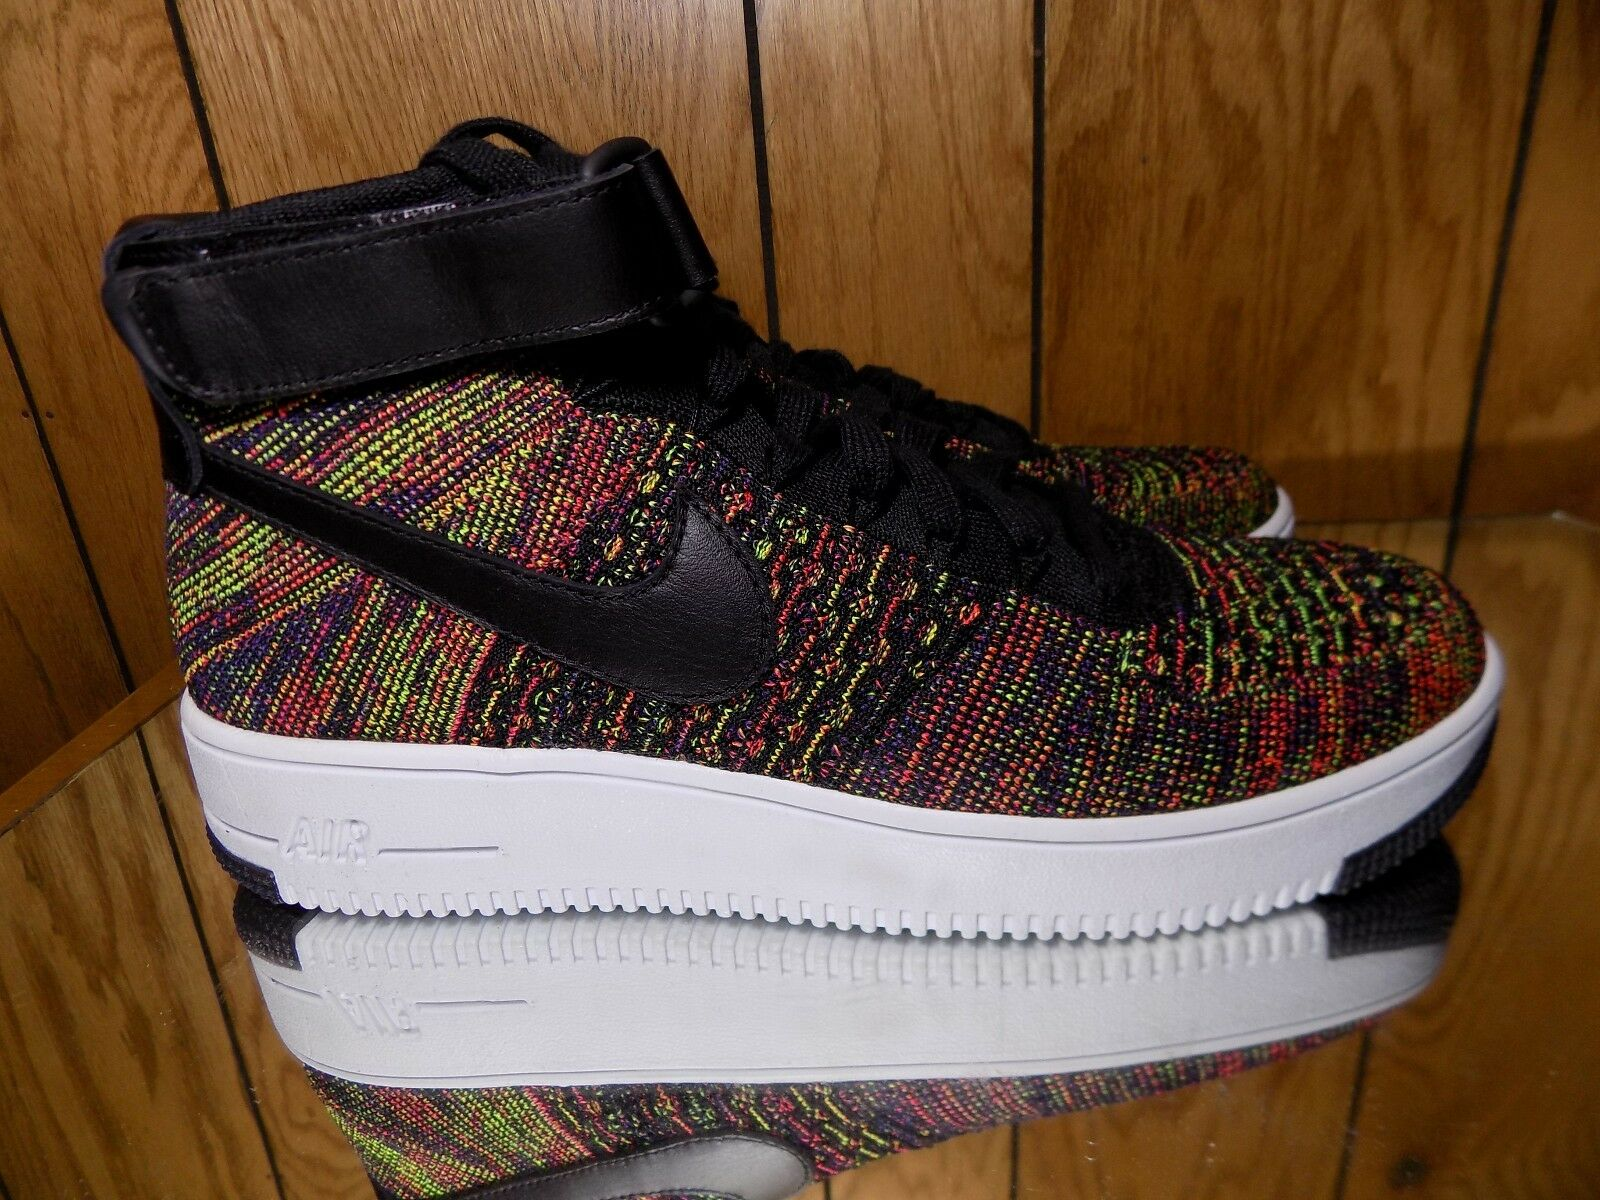 Mens Nike AIR FORCE 1 ULTRA FLYKNIT MID Shoes -Reg 175 -817420 002 -Sz 9.5 -New